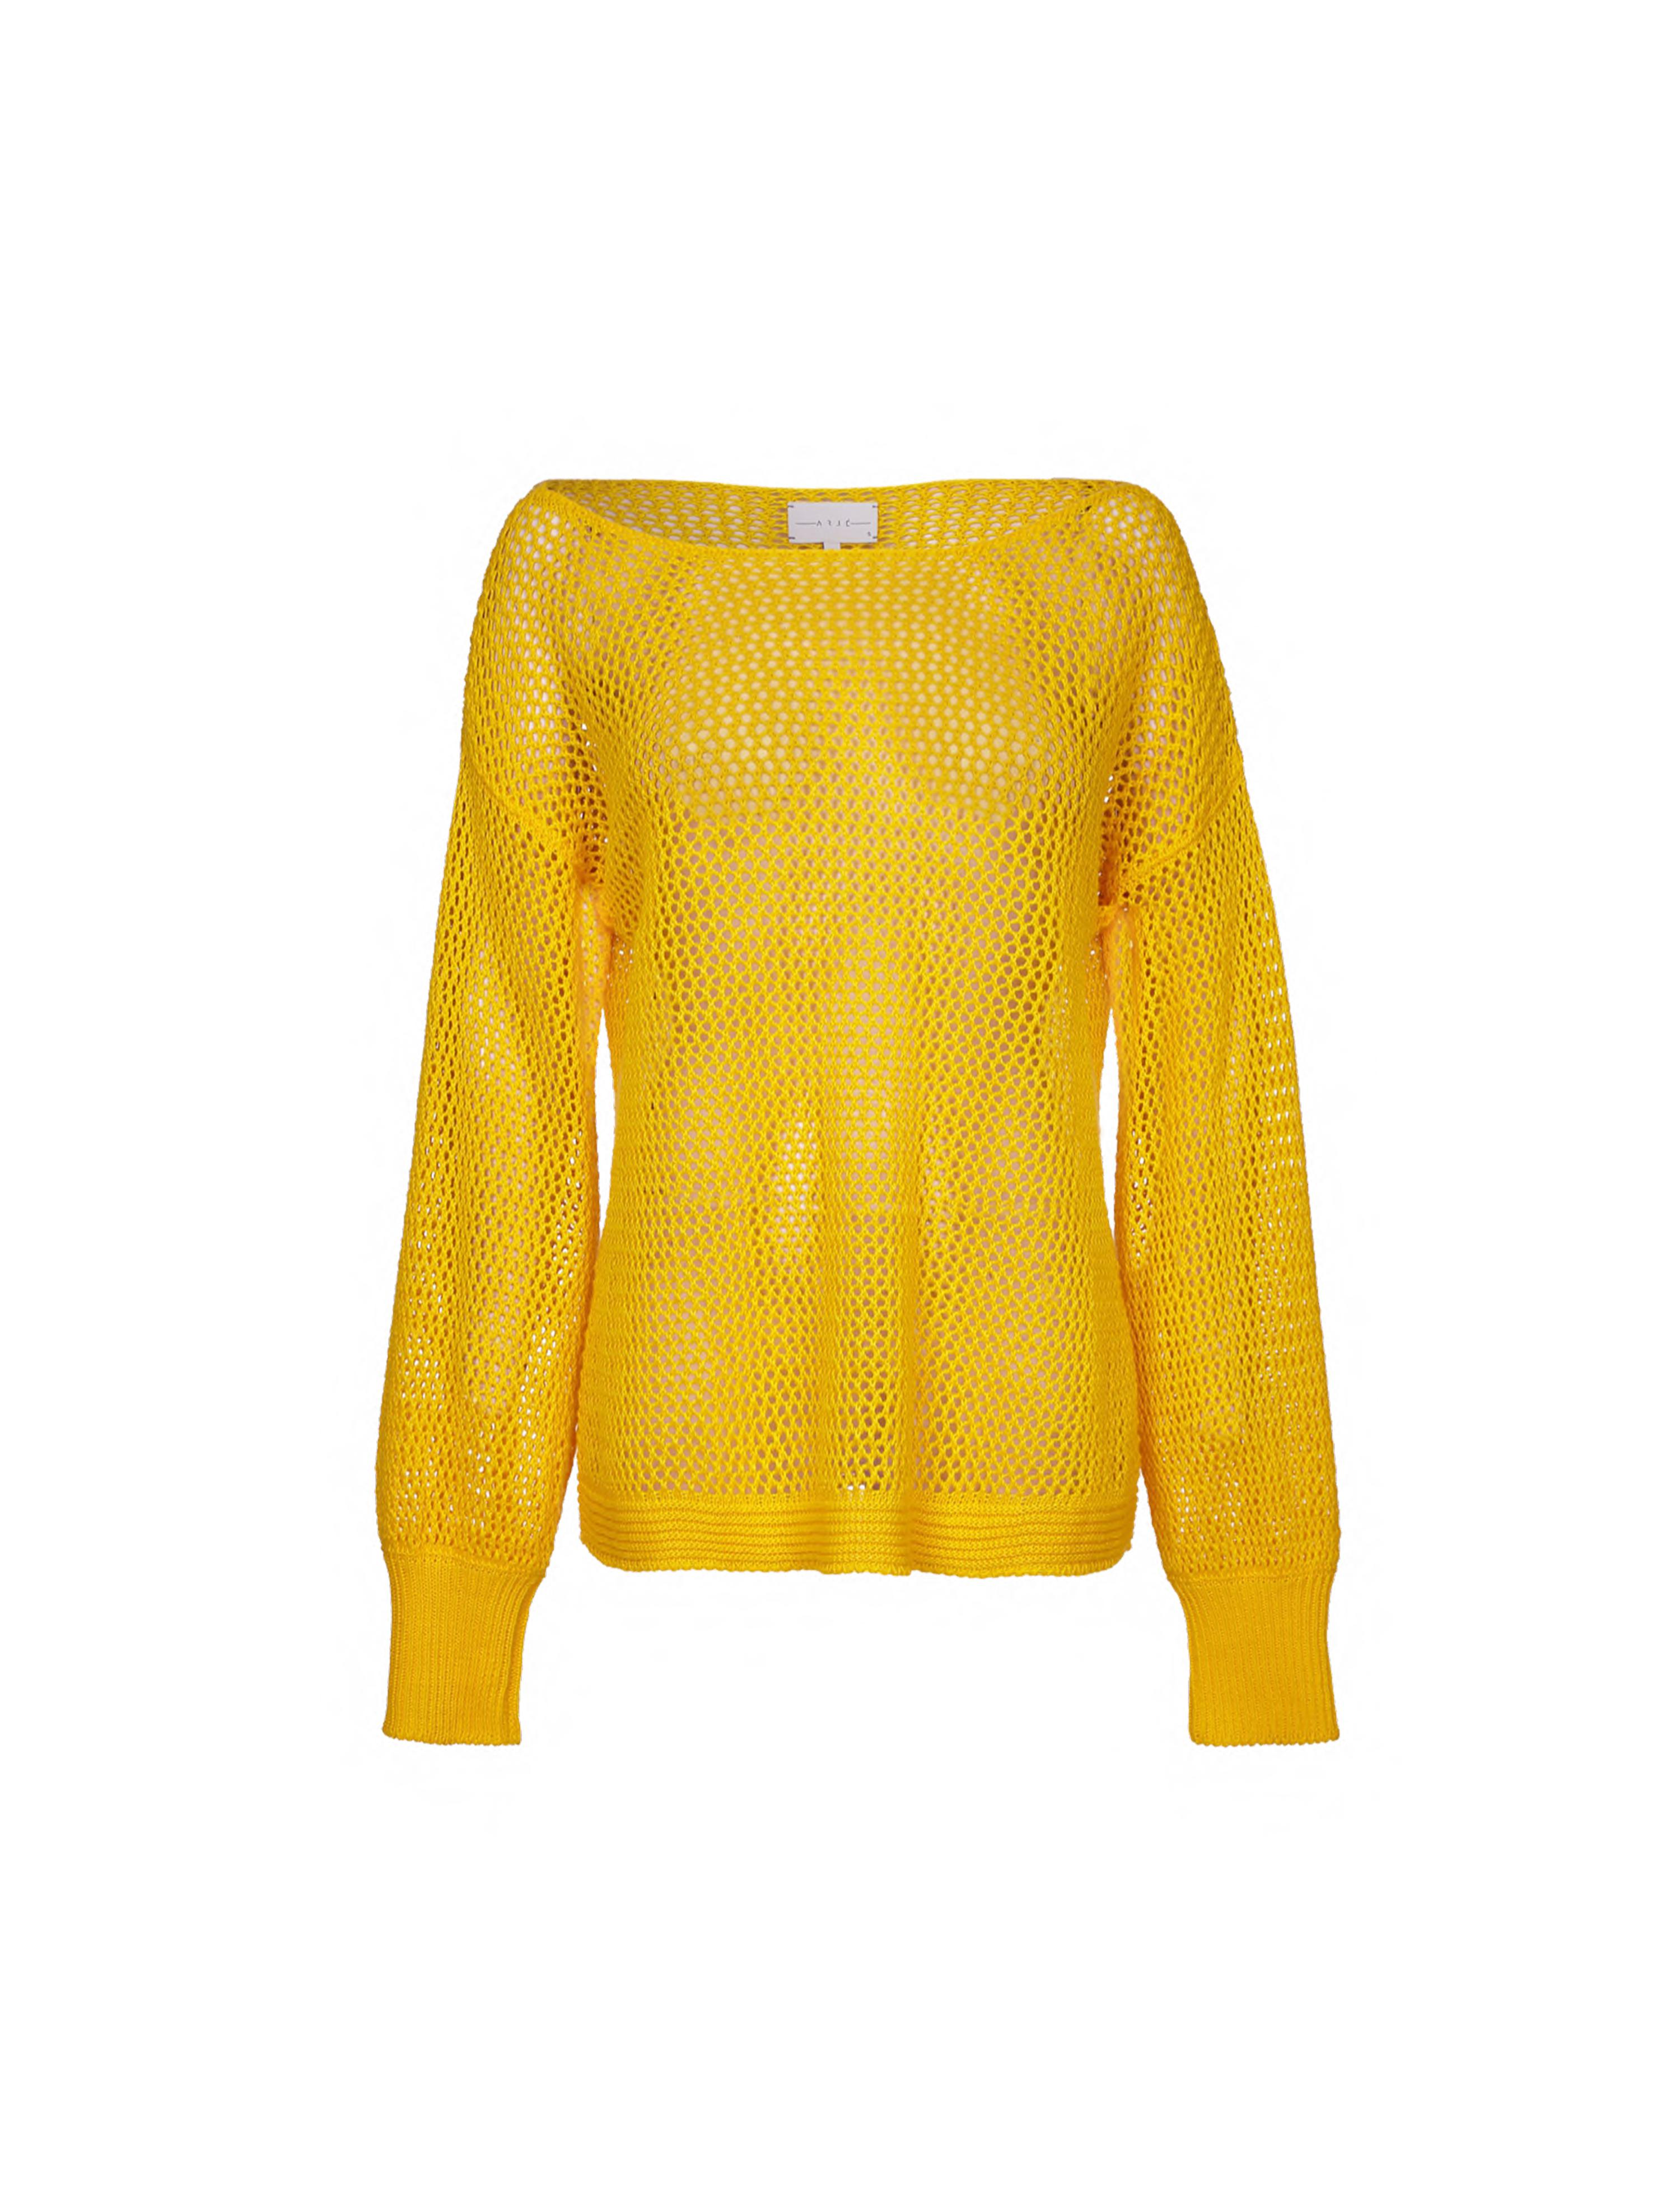 THE CHLOE LINEN BASKET KNIT RELAXED SWEATER